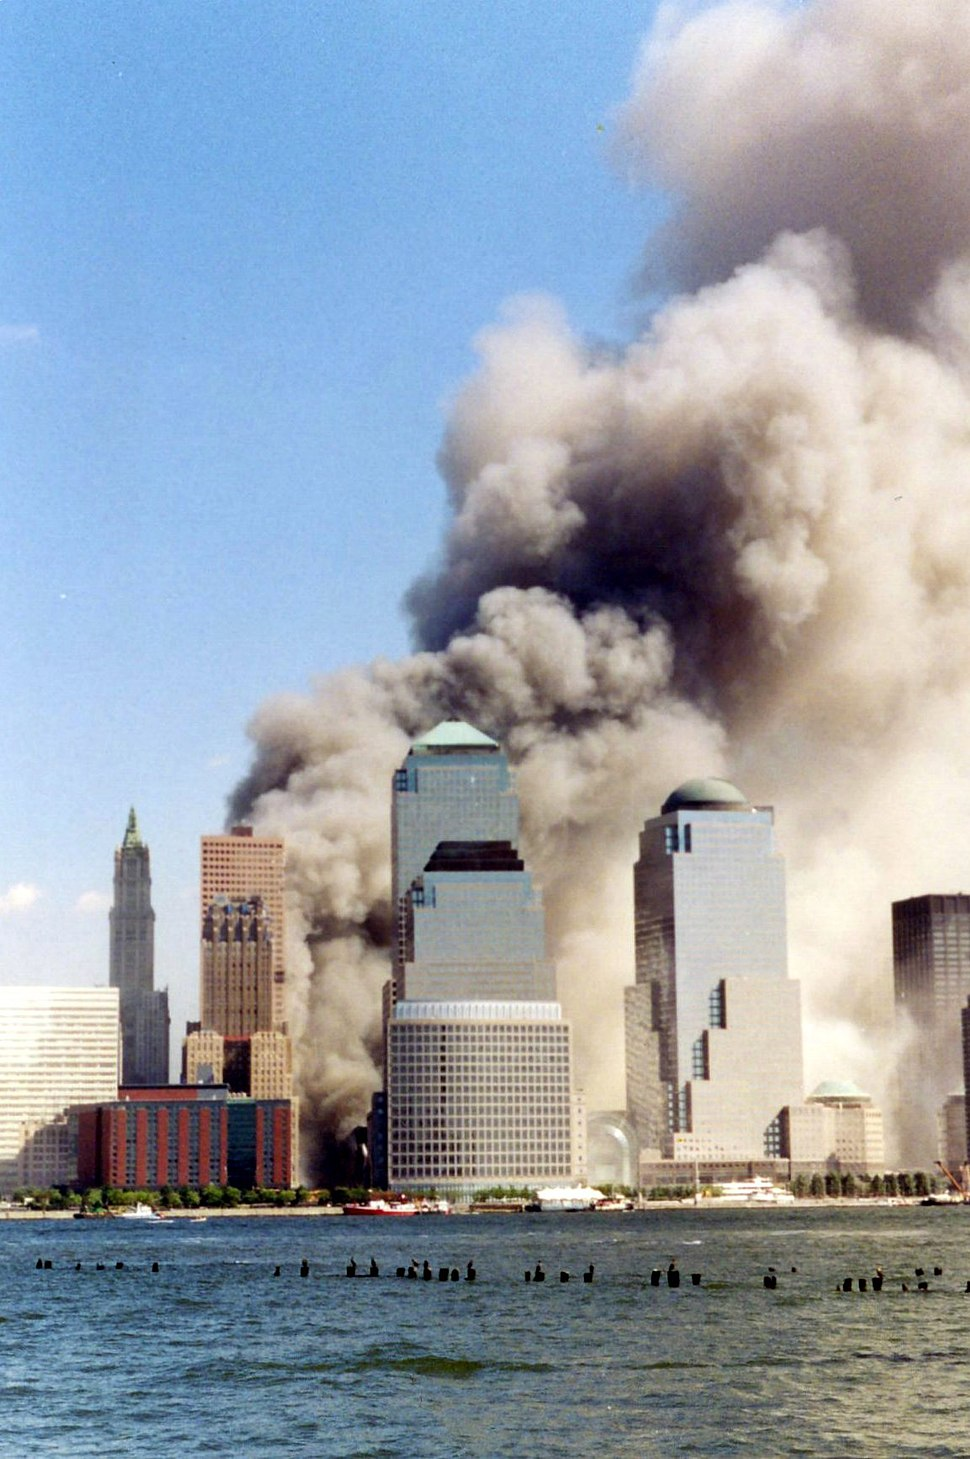 September 11 2001 just collapsed